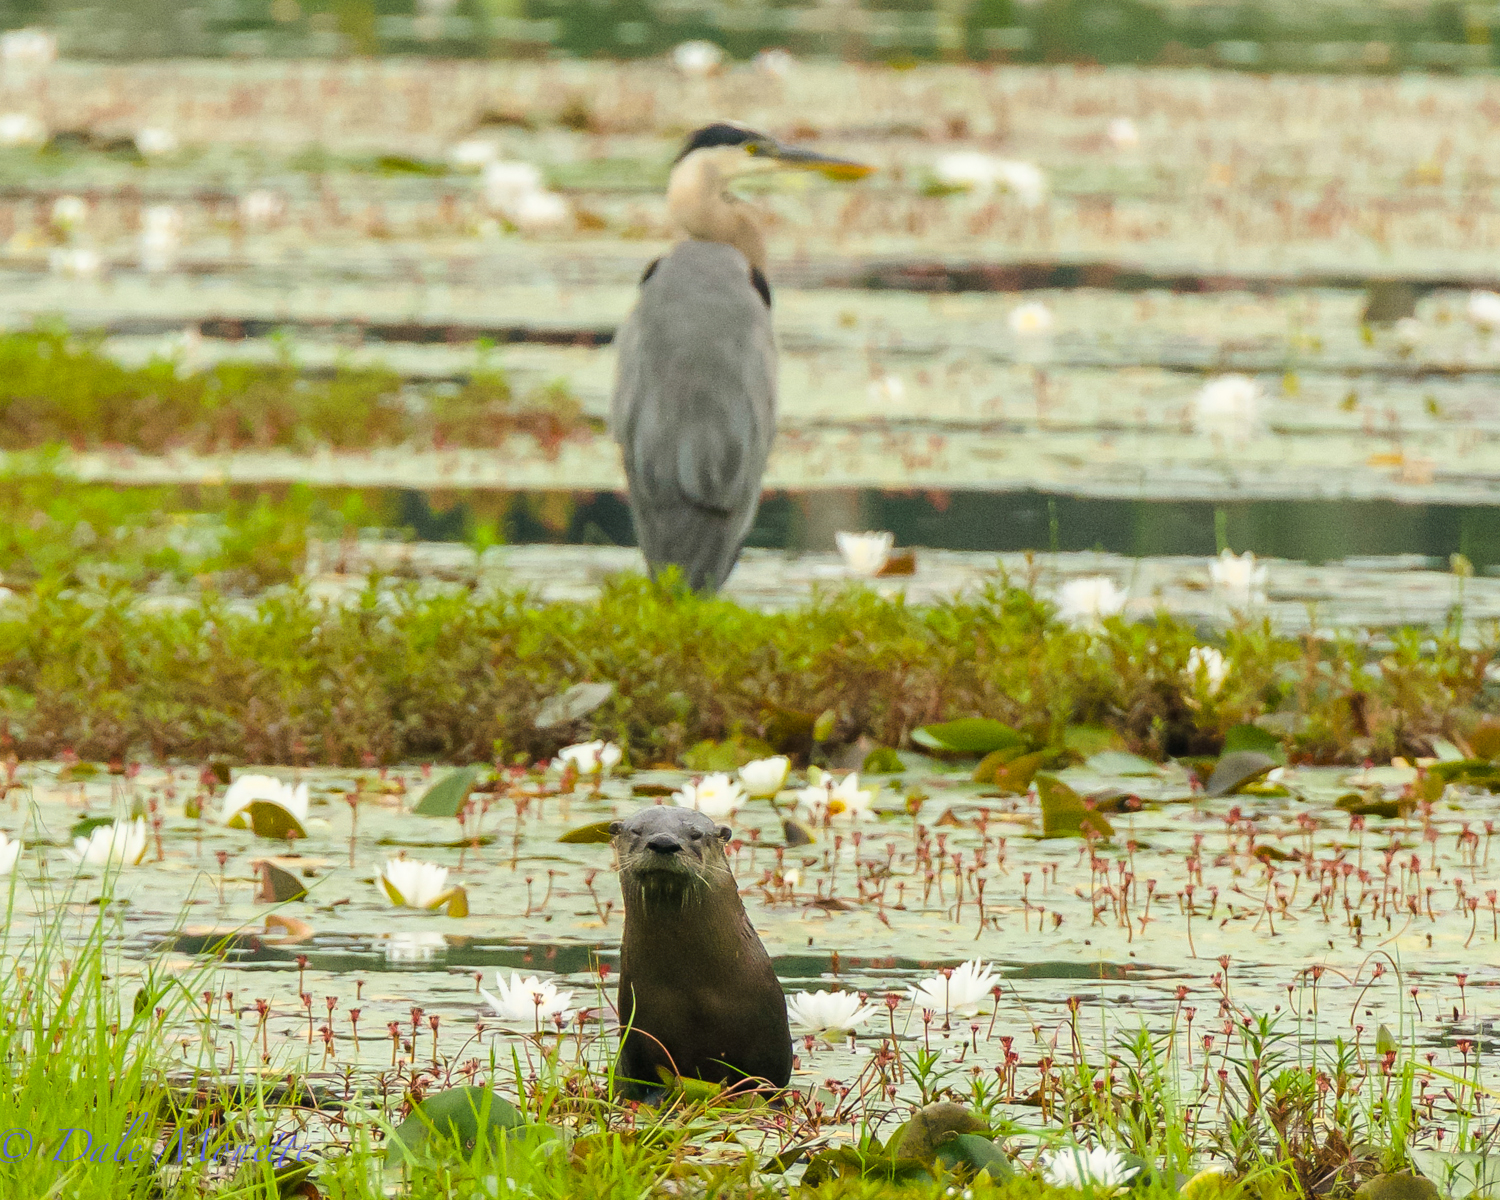 As I was watching this heron sitting on a mud and weedy patch in a swamp this otter popped up right in my viewfinder of the camera as I was looking at the heron !!  That will NEVER happen again to me.